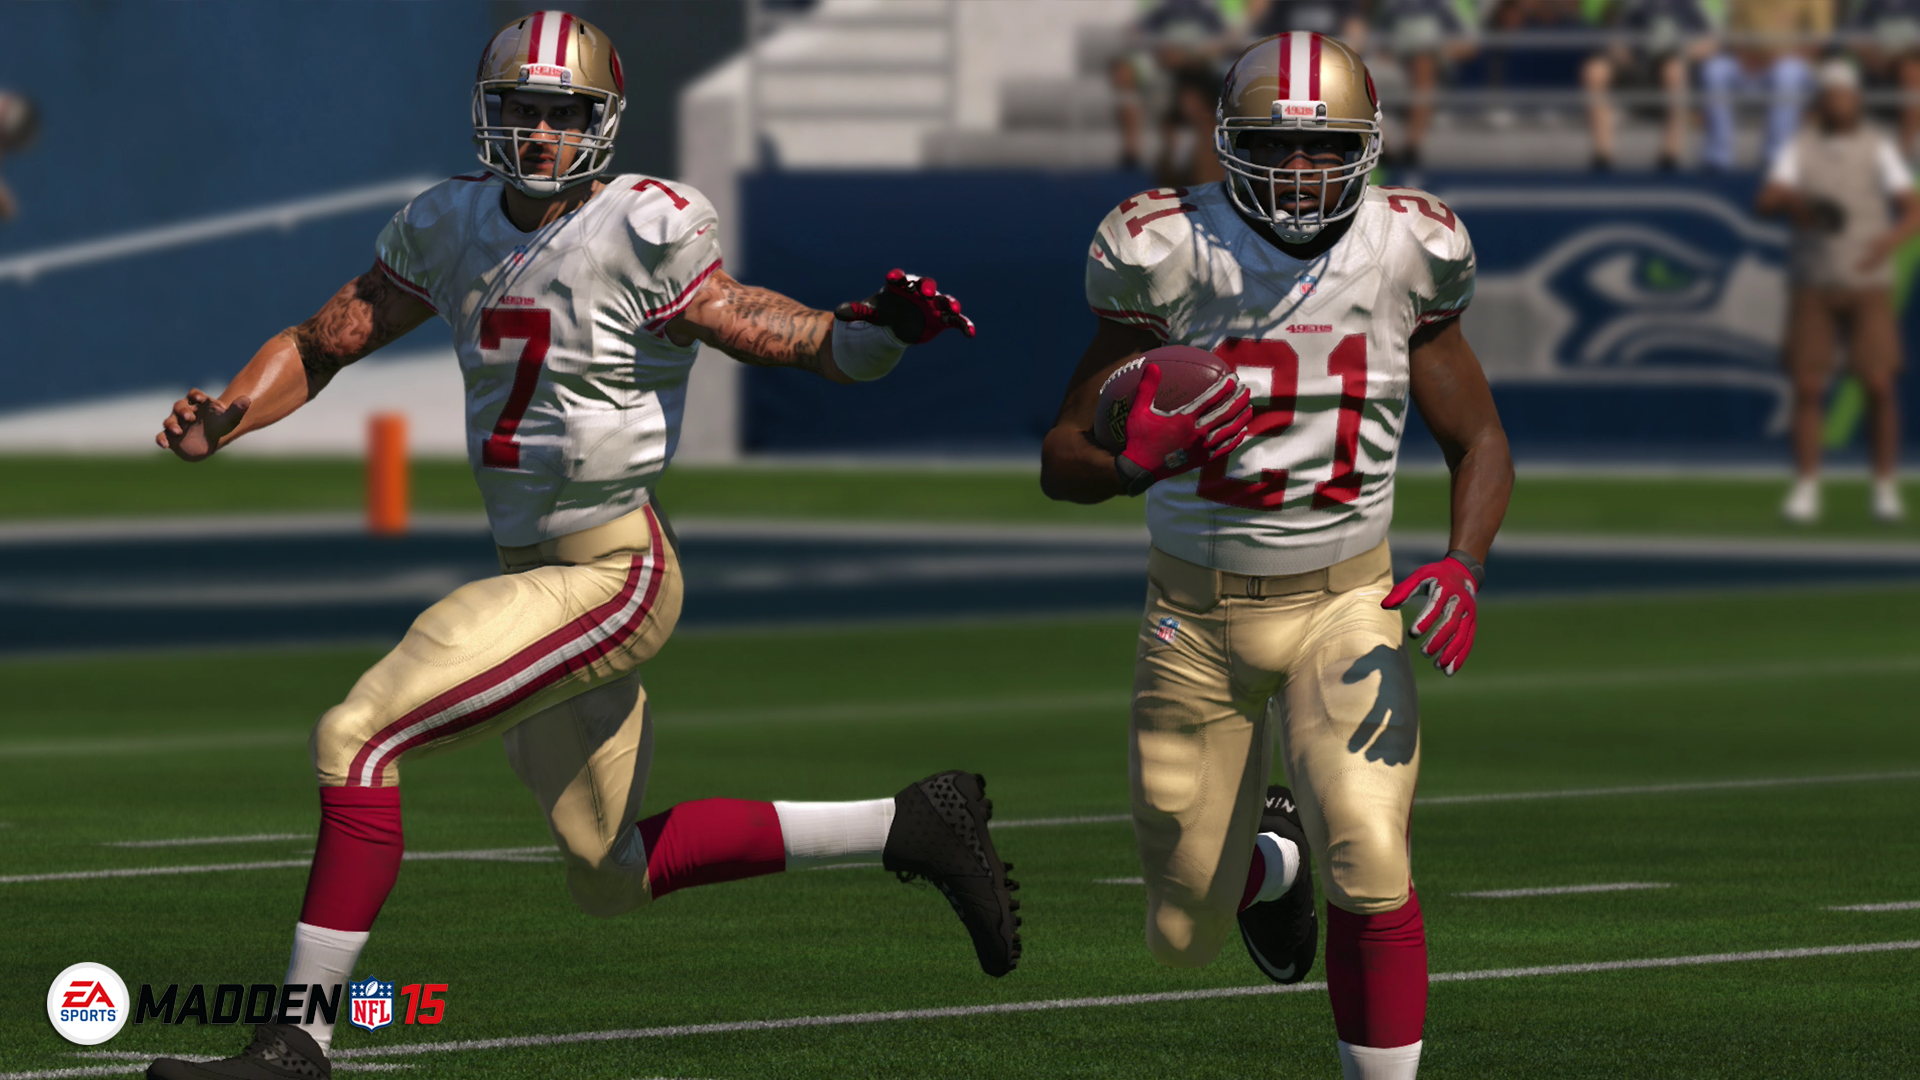 Life Without Ncaa Football 15 Here Are 5 Alternatives To